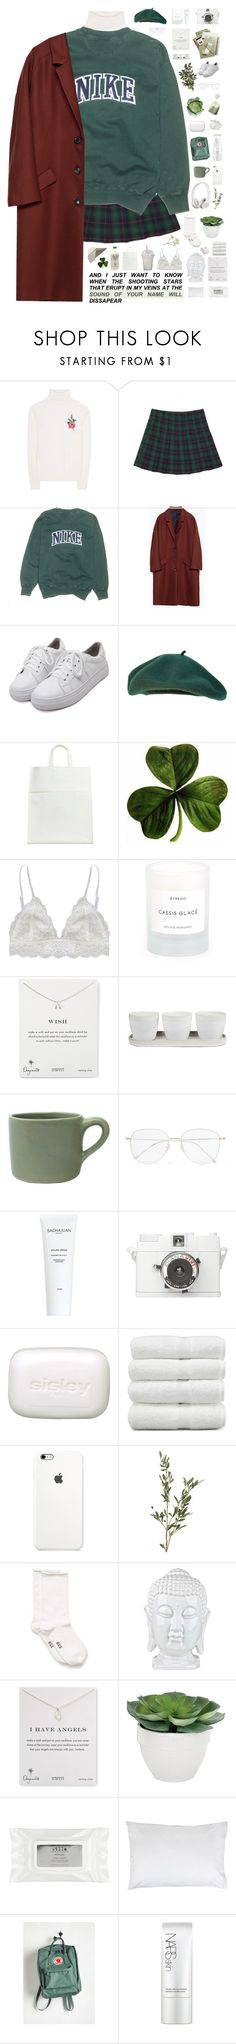 """""""goblin's wife."""" by tzingfung ❤ liked on Polyvore featuring Gucci, NIKE, Zara, WithChic, Maison Margiela, Humble Chic, Conair, Byredo, Dogeared and Threshold"""